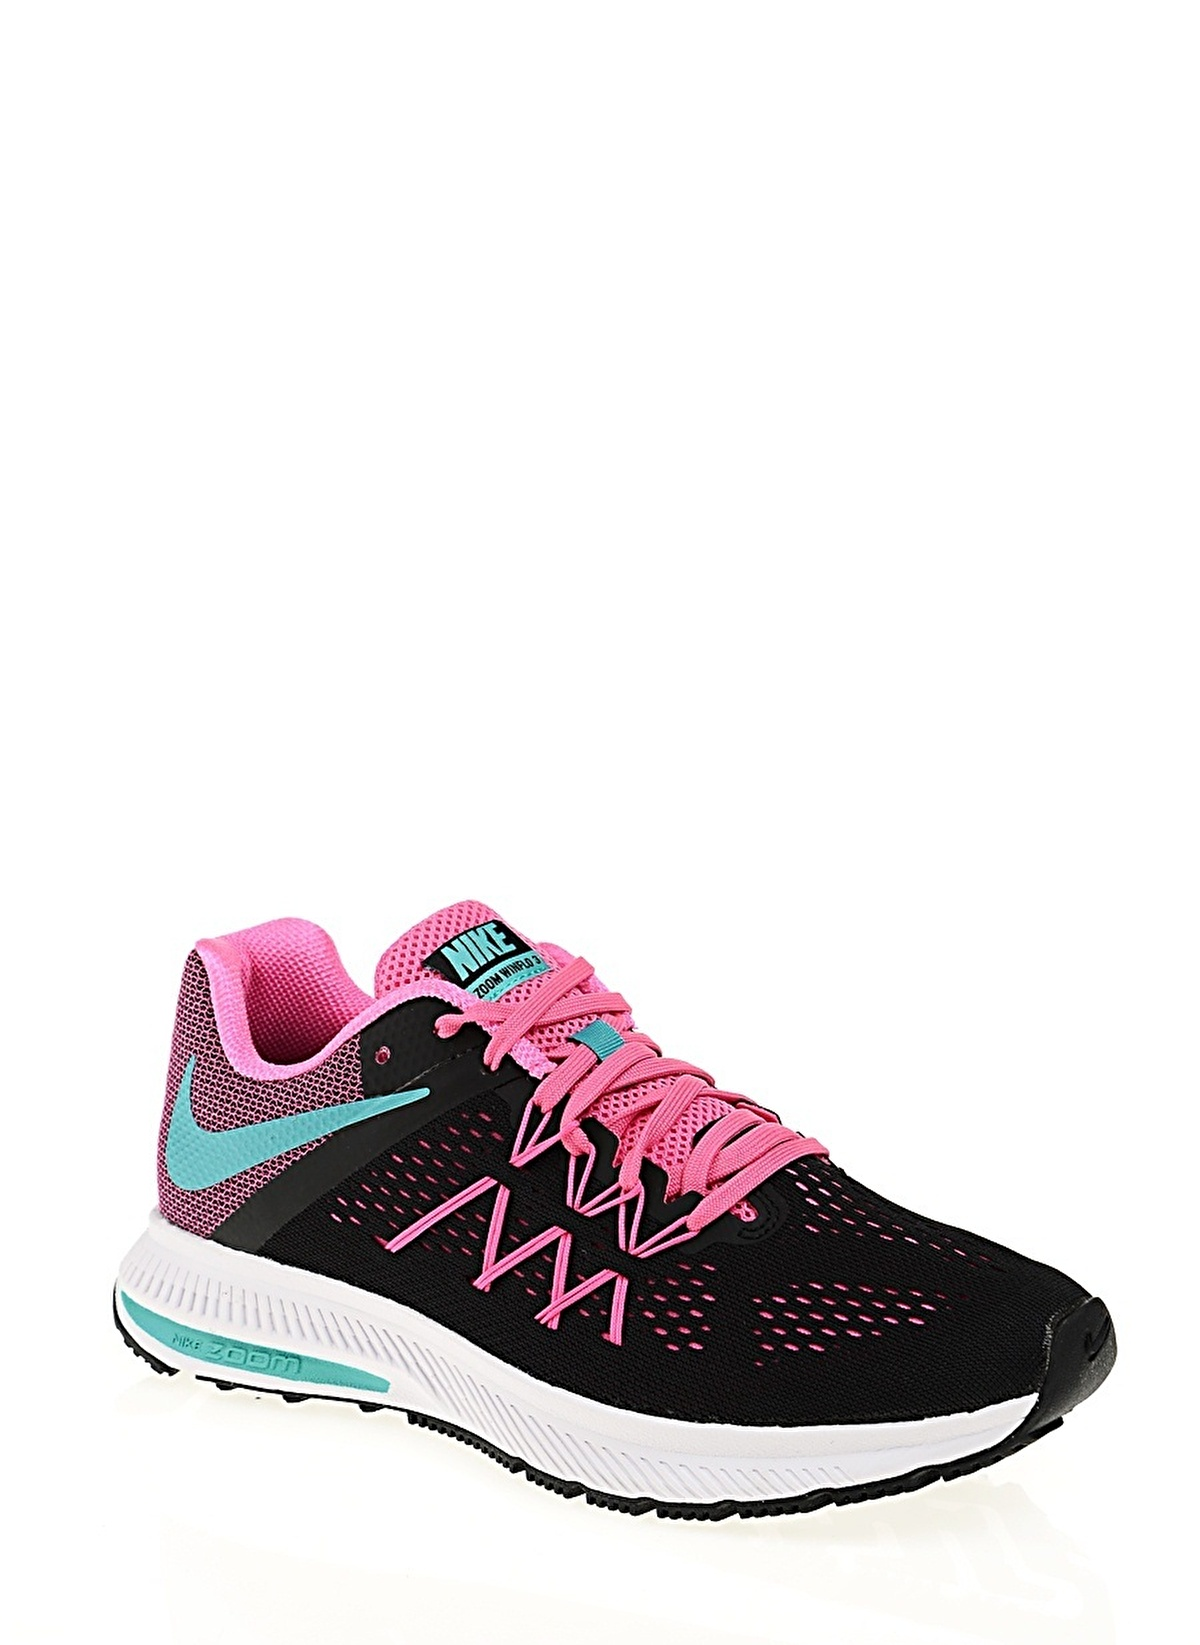 huge selection of 15d67 2247b 831562-004-Wmns-Nike-Zoom-Winflo-3